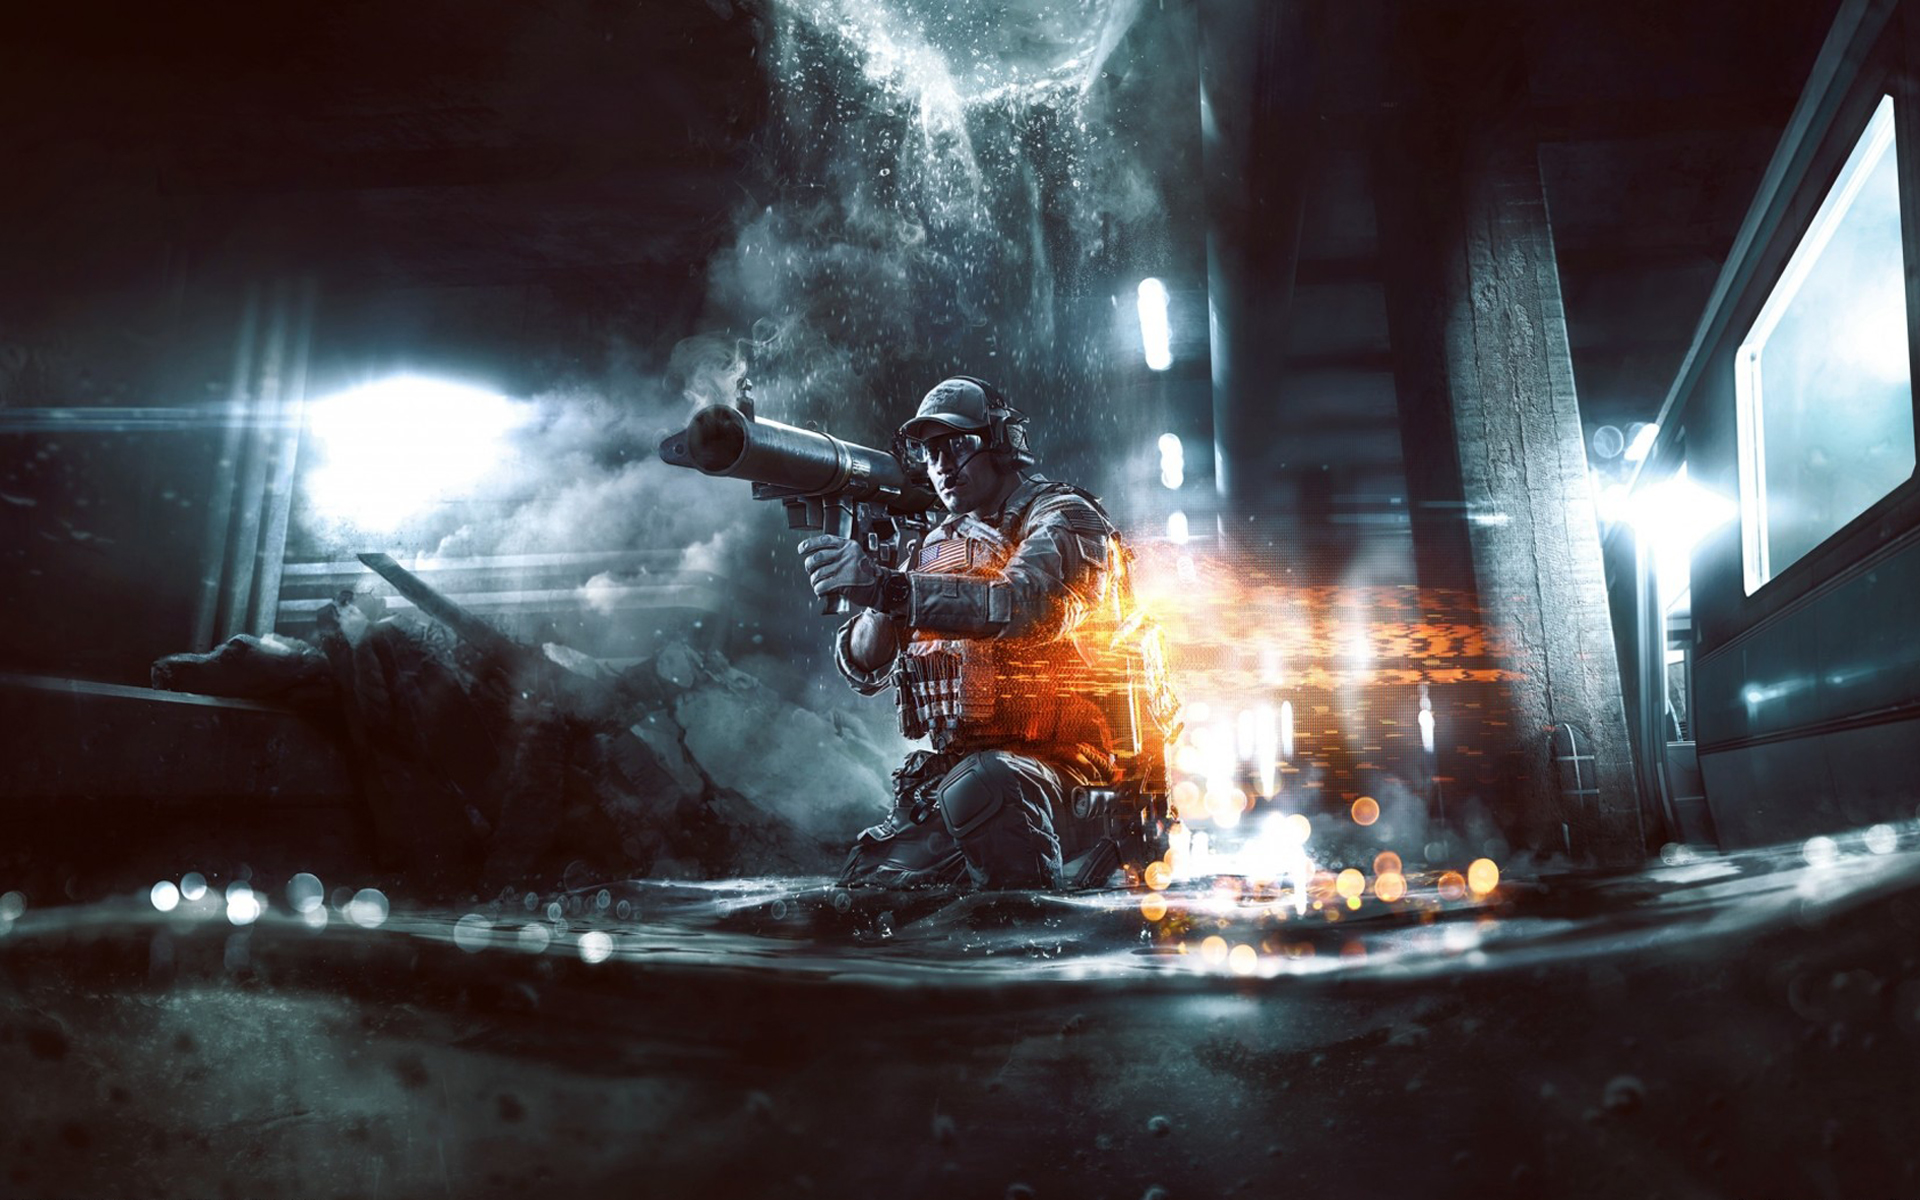 fantastic battlefield 4 wallpaper 45537